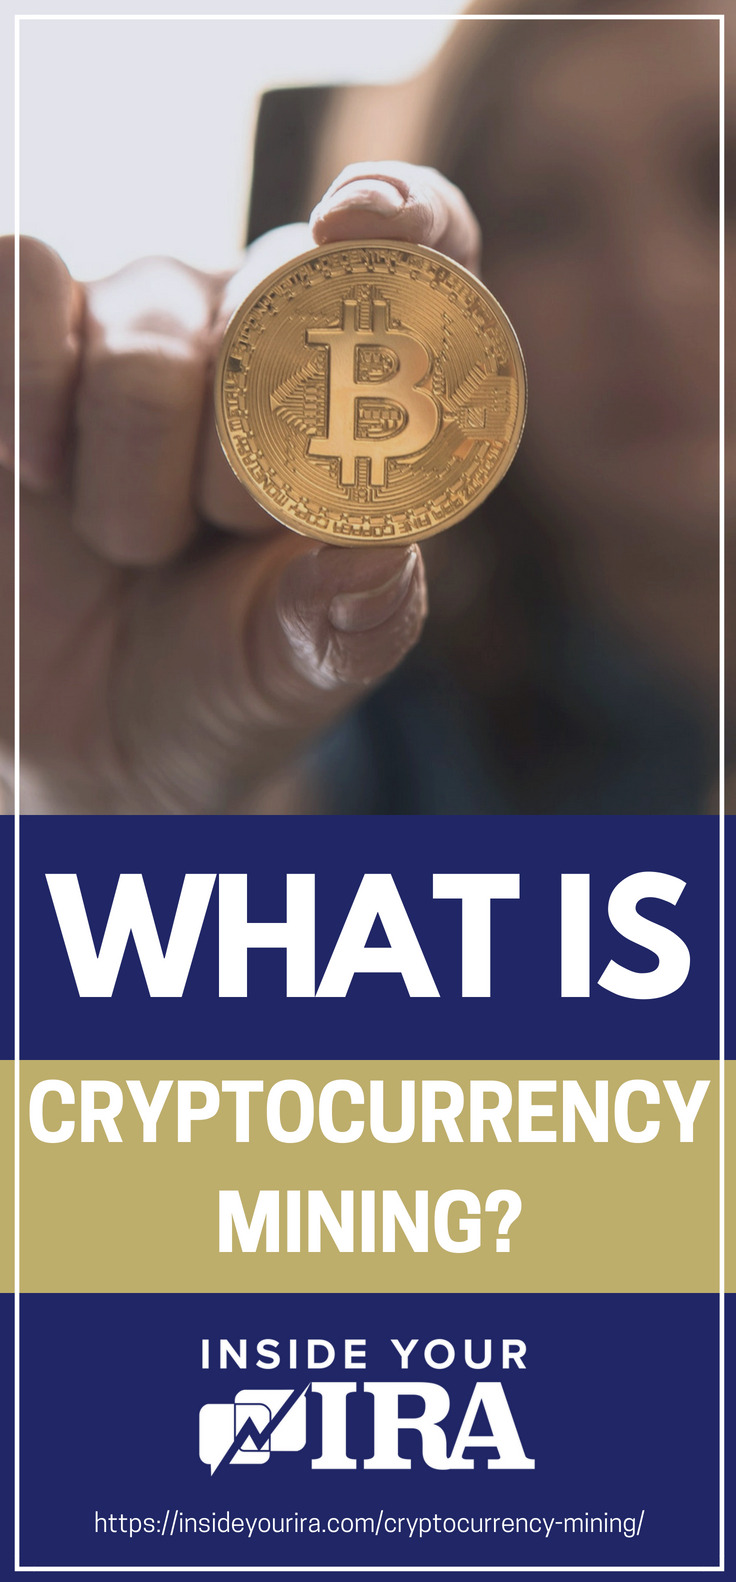 What Is Cryptocurrency Mining? | Inside Your IRA https://insideyourira.com/cryptocurrency-mining/